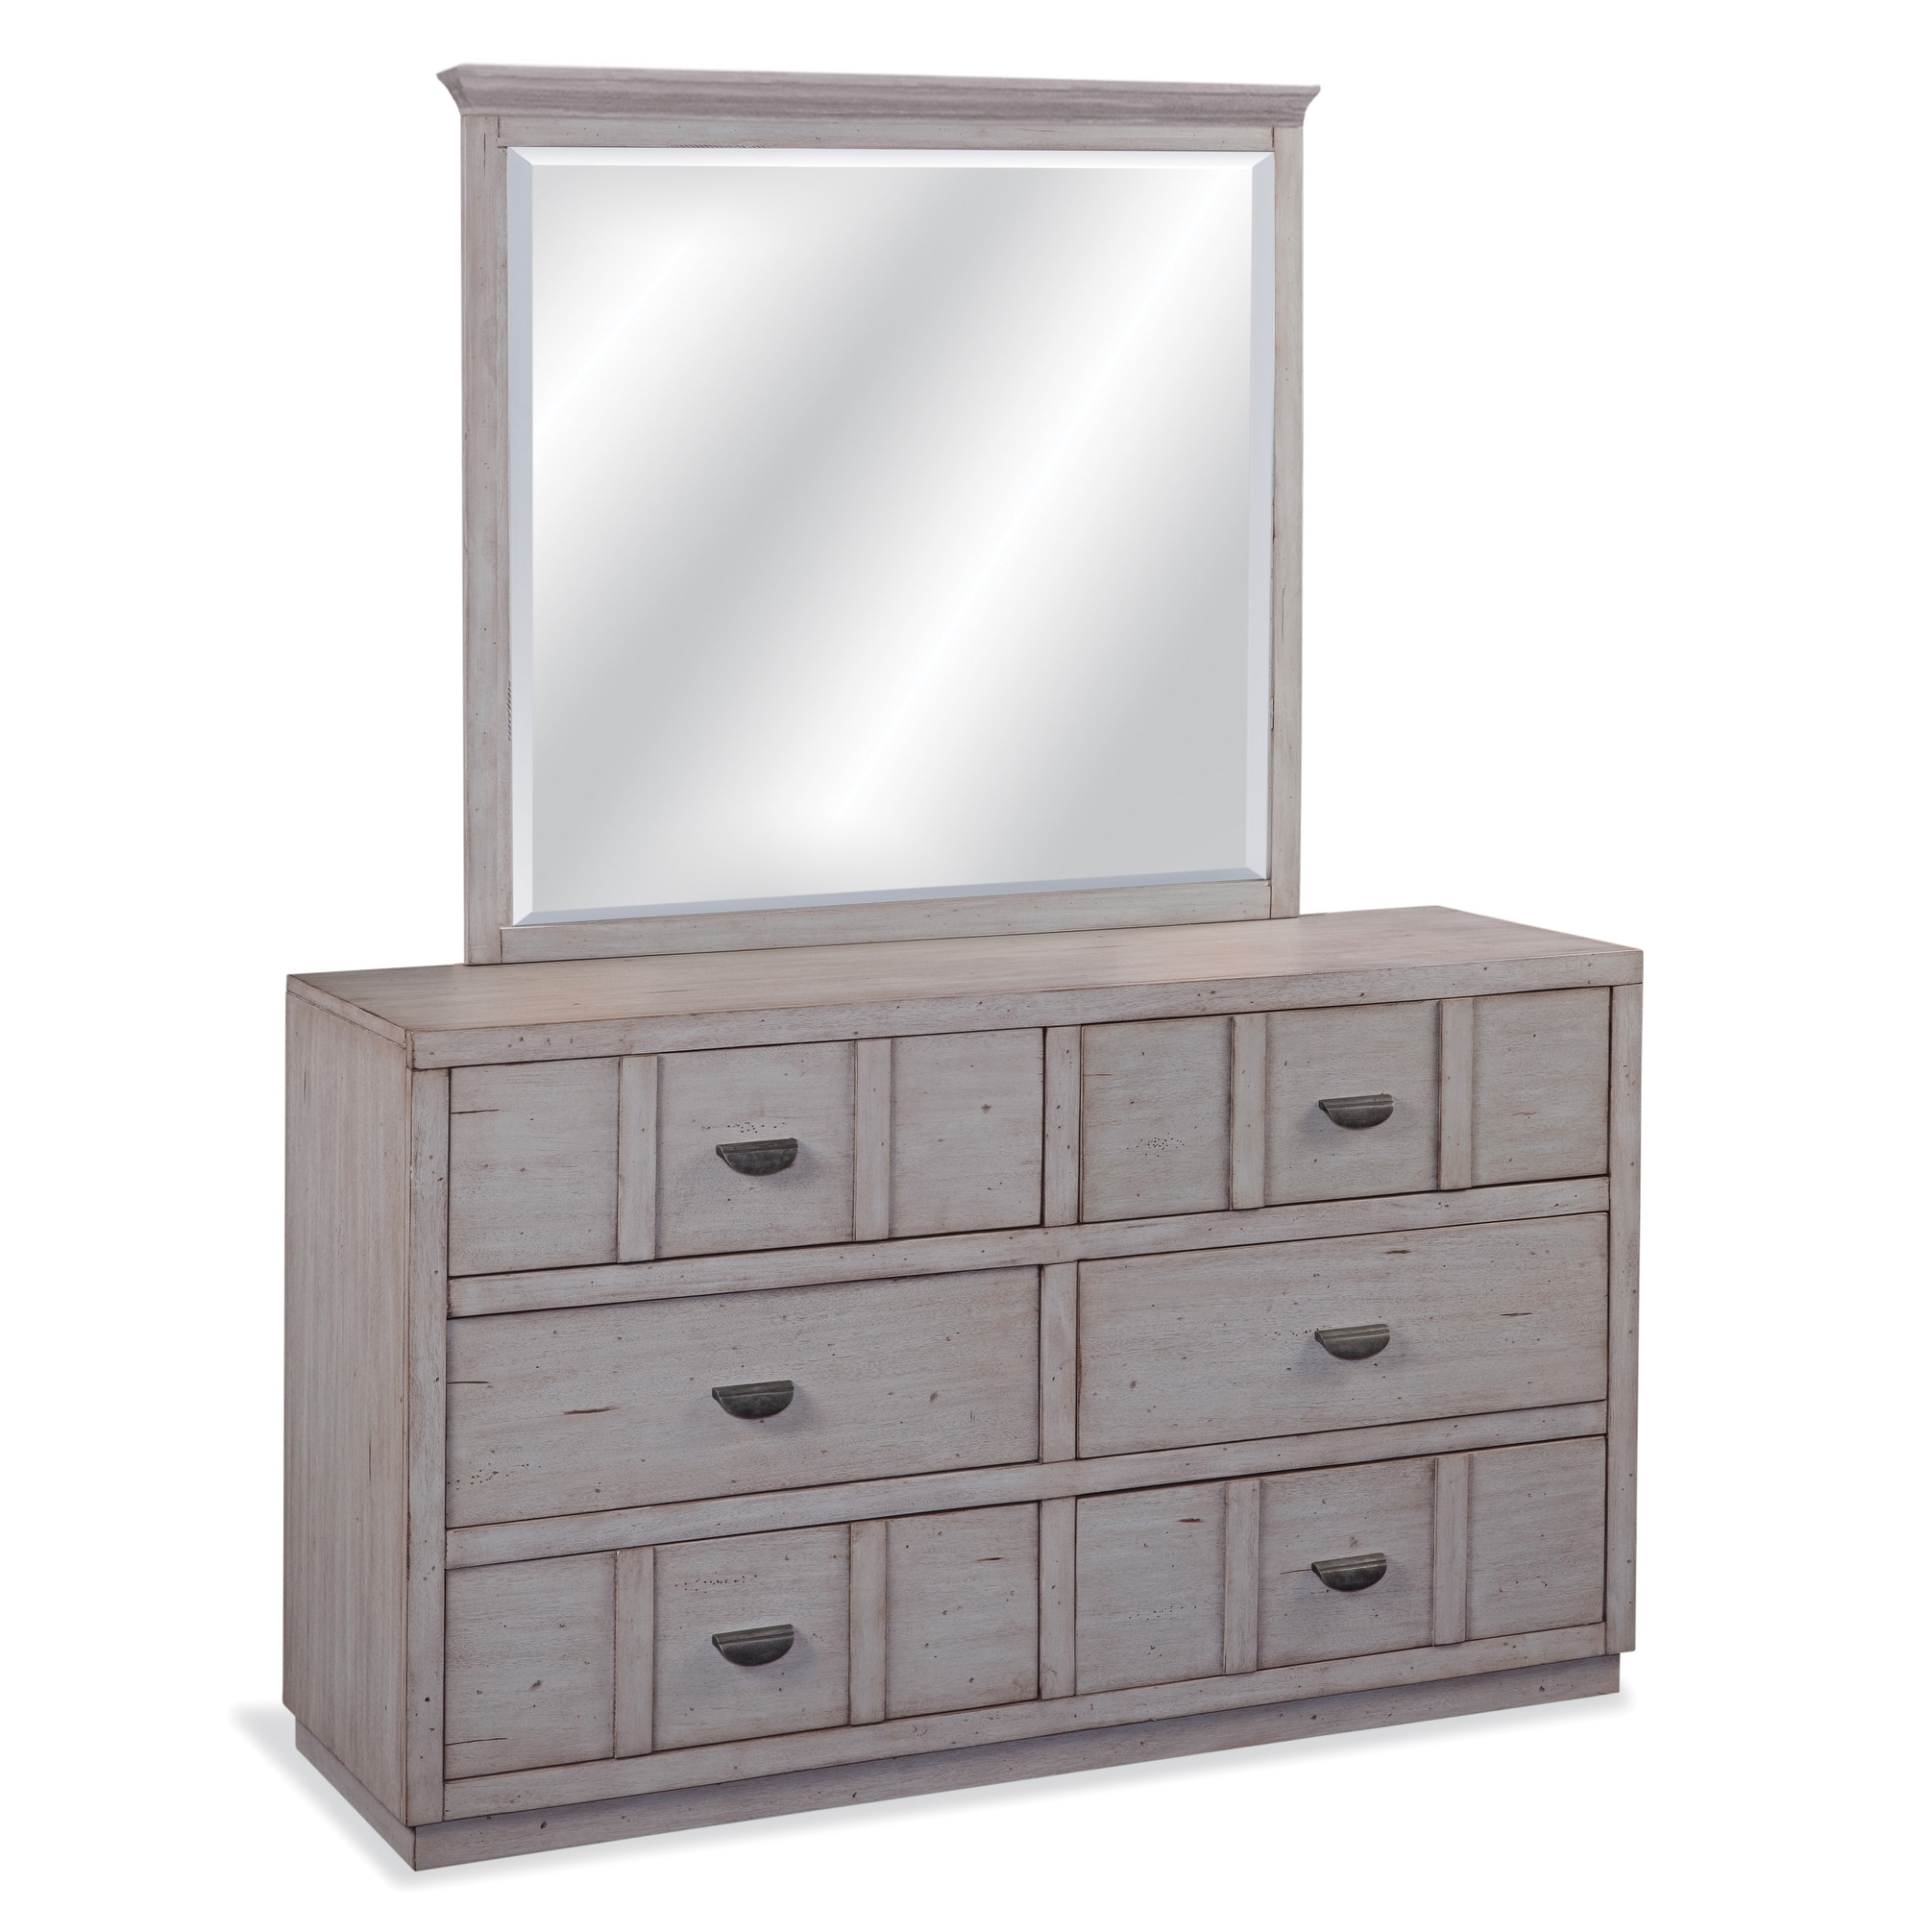 Parker Driftwood 6 Drawer Double Dresser With Mirror Overstock 20716403